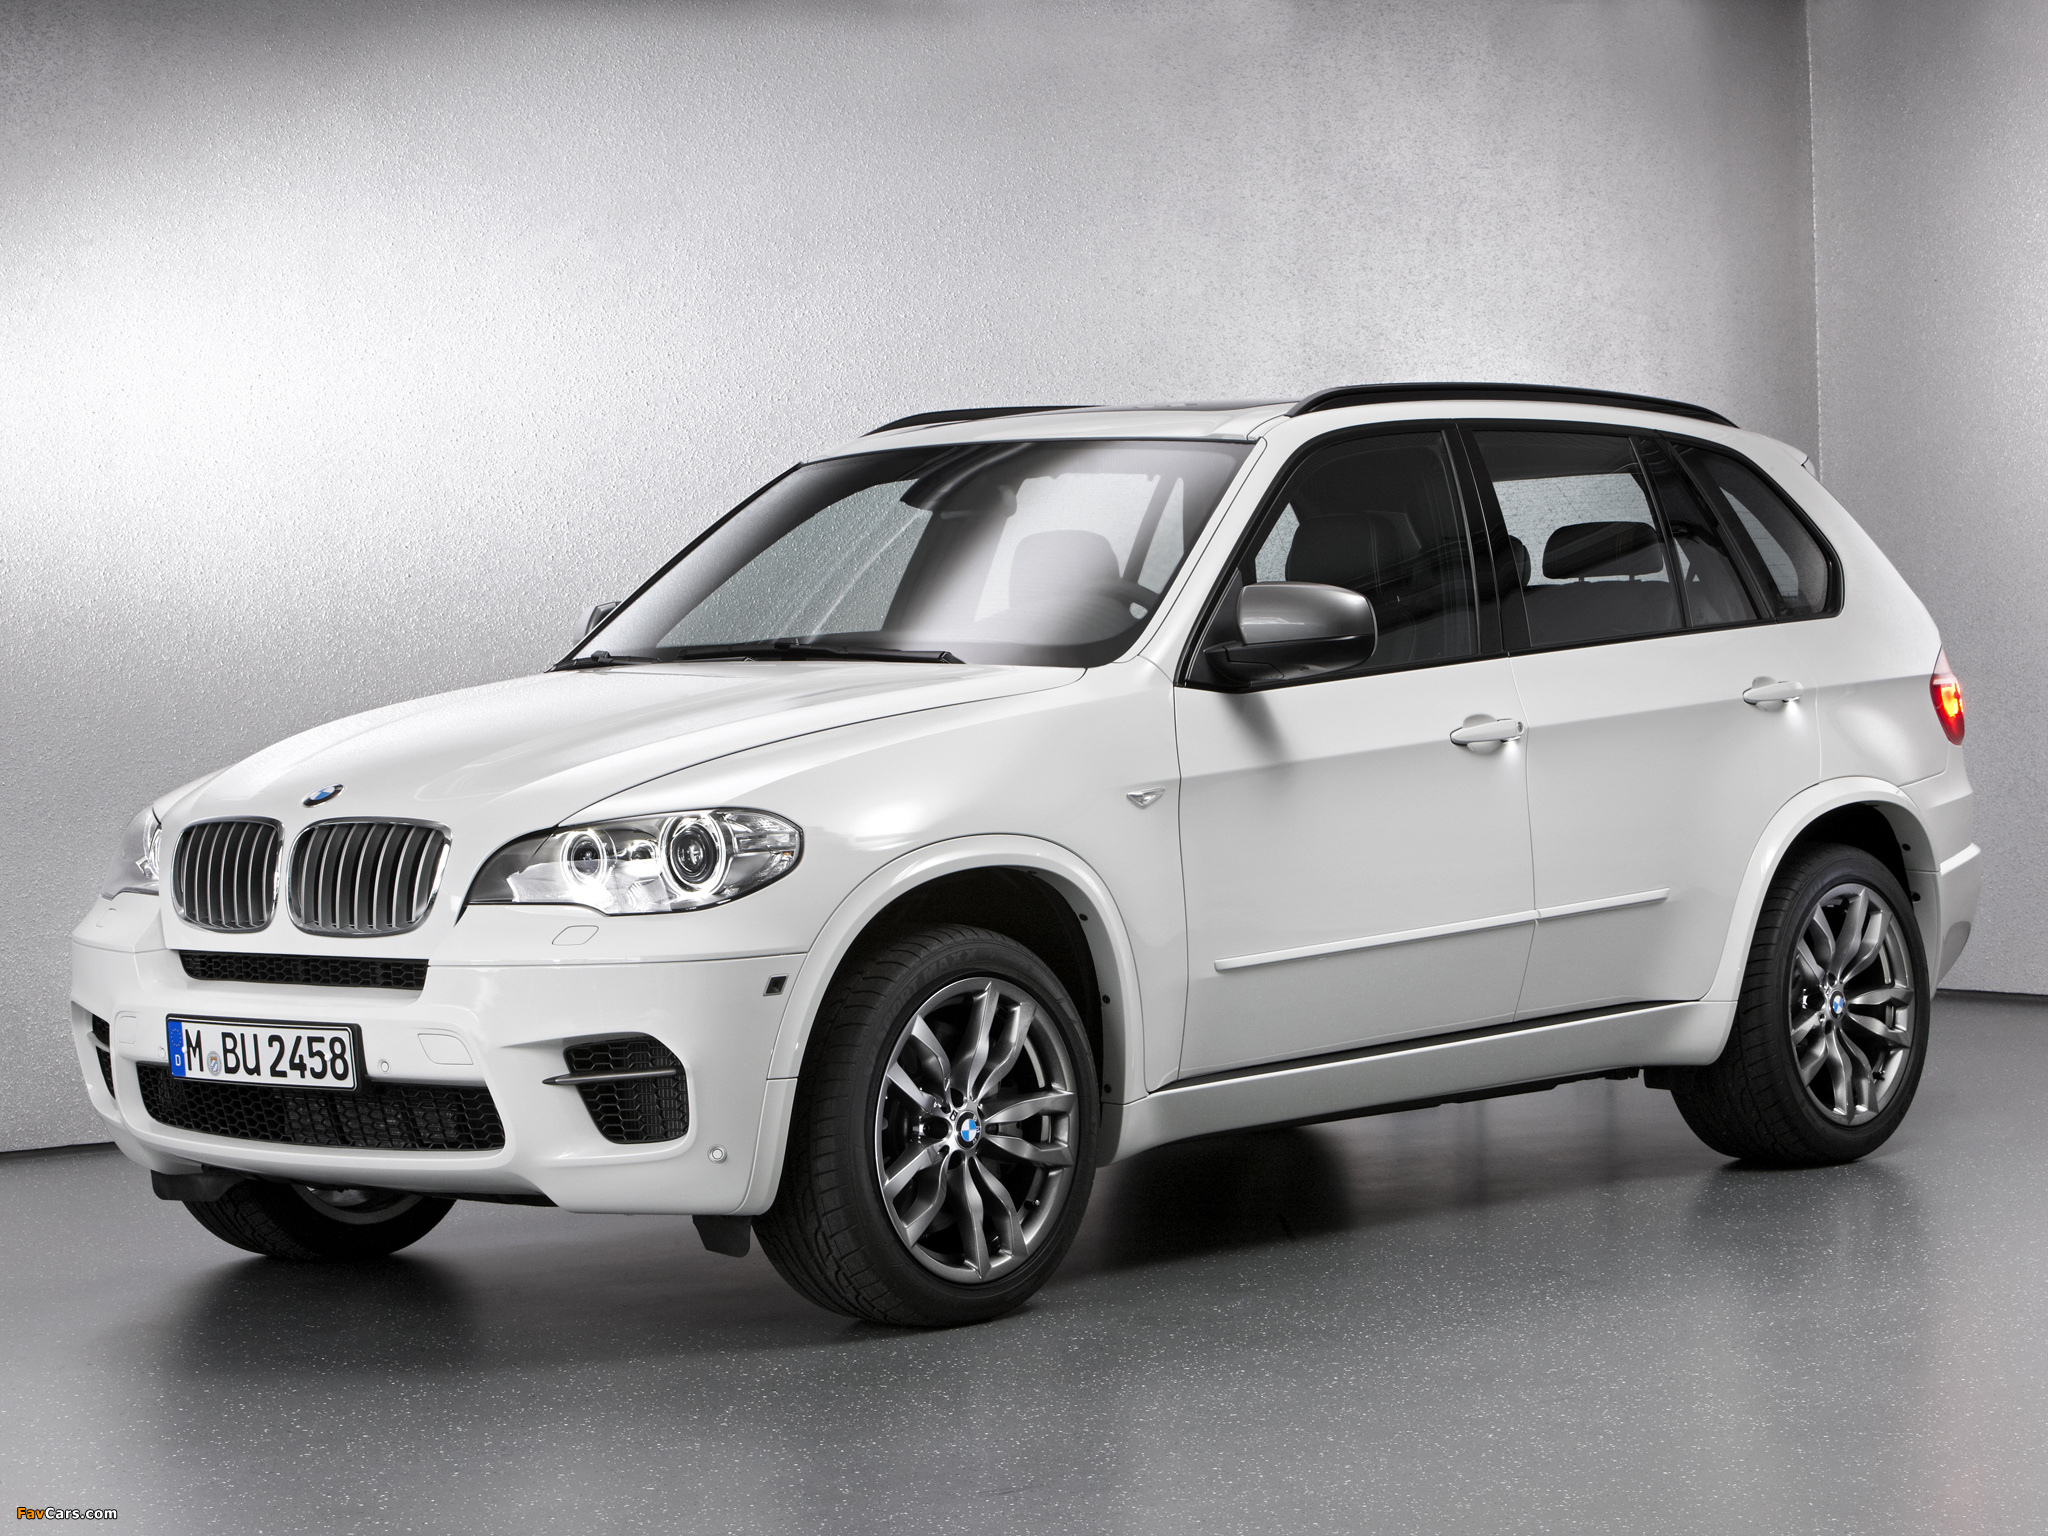 Images Of Bmw X5 M50d E70 2012 2048x1536